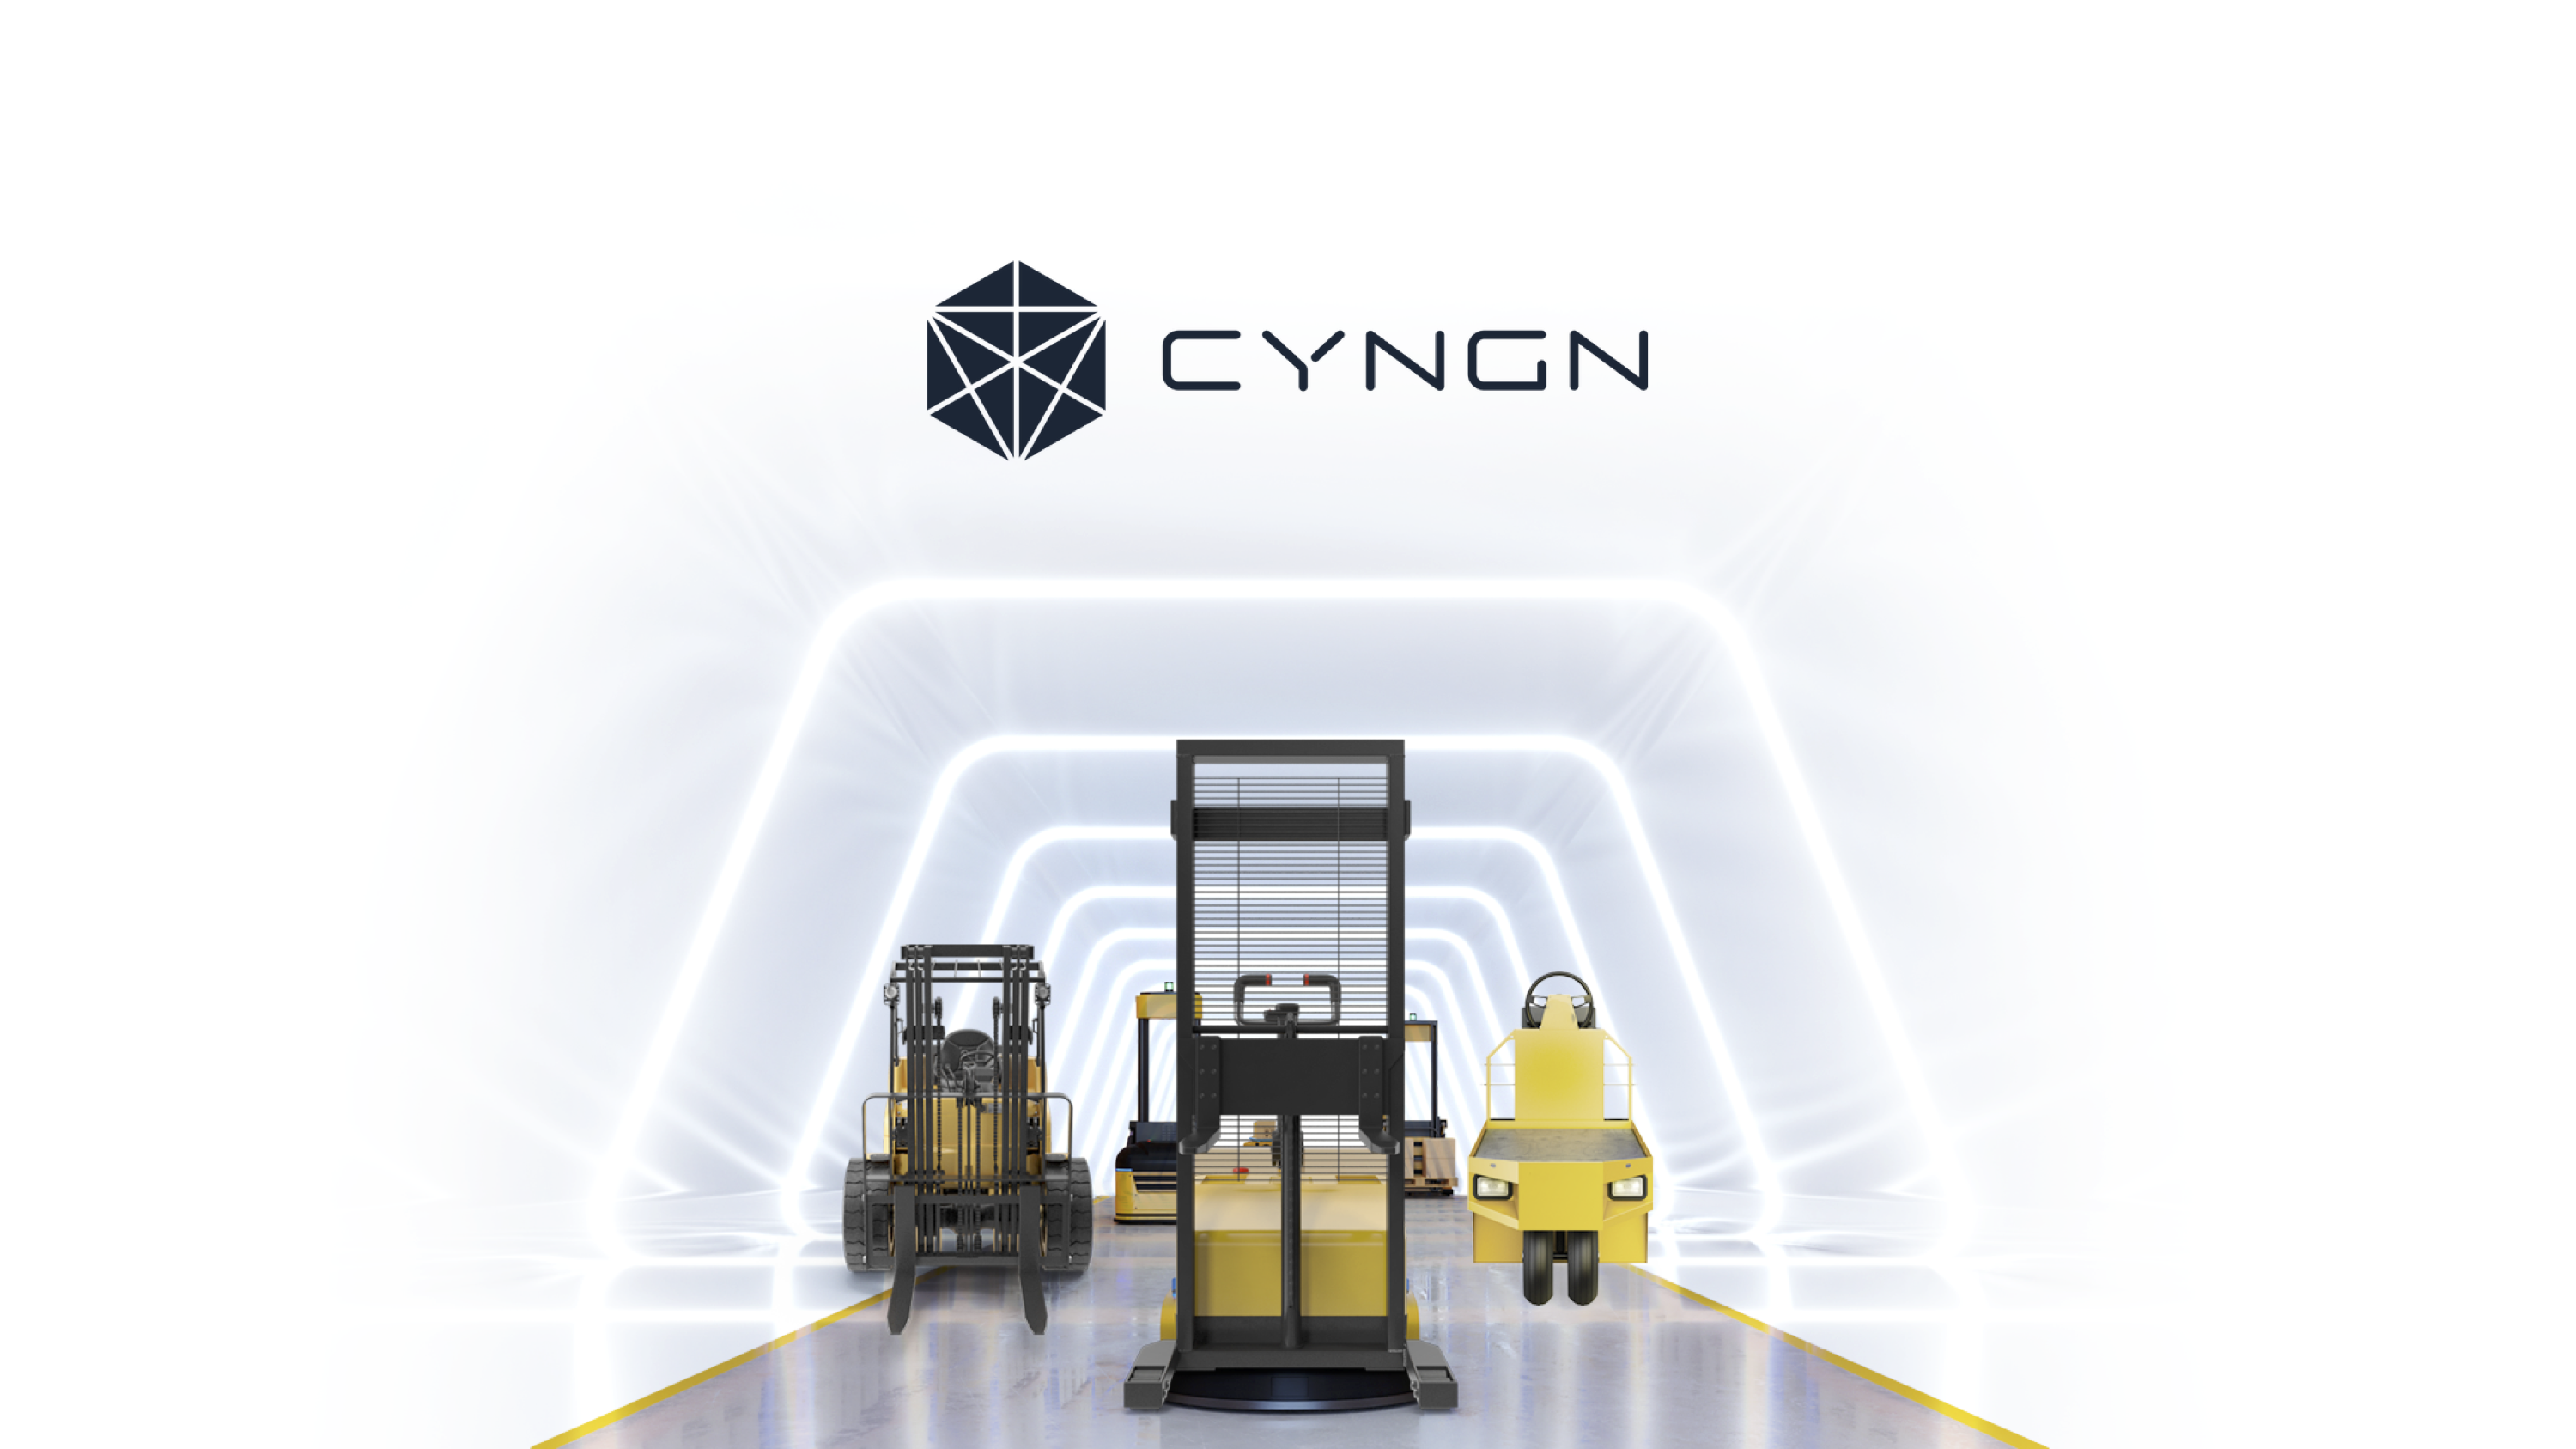 Cyngn Announces Pricing of Initial Public Offering